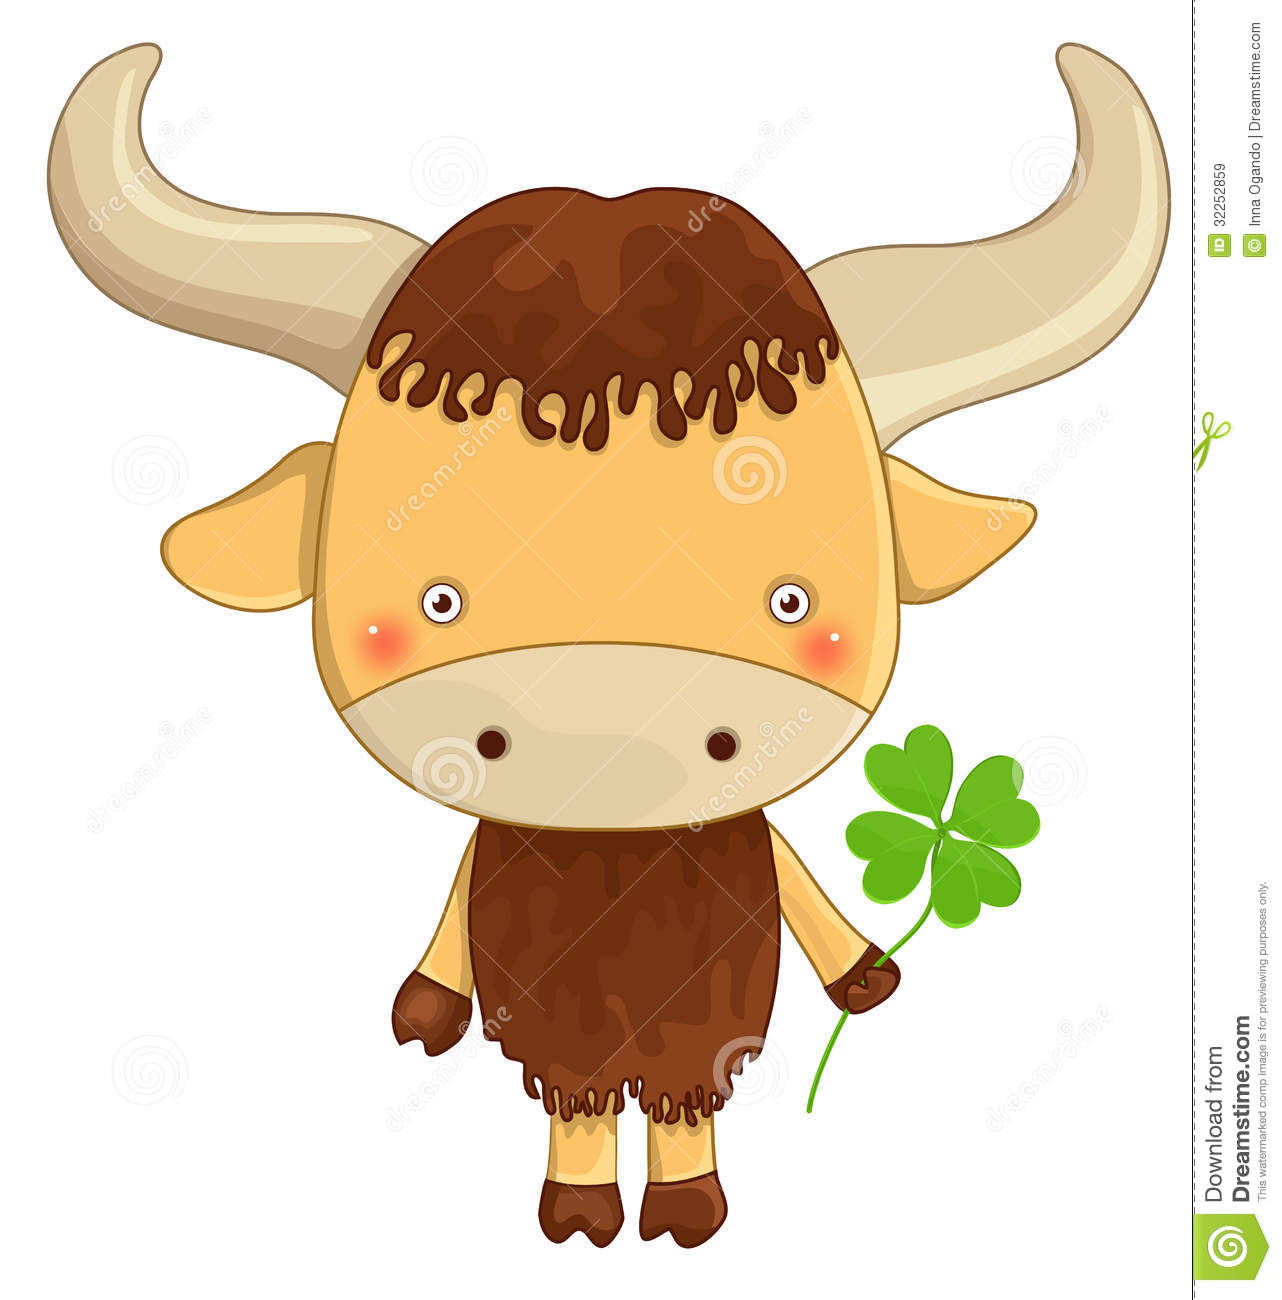 Yak Cartoon Character Royalty Free Stock Images - Image: 32252859